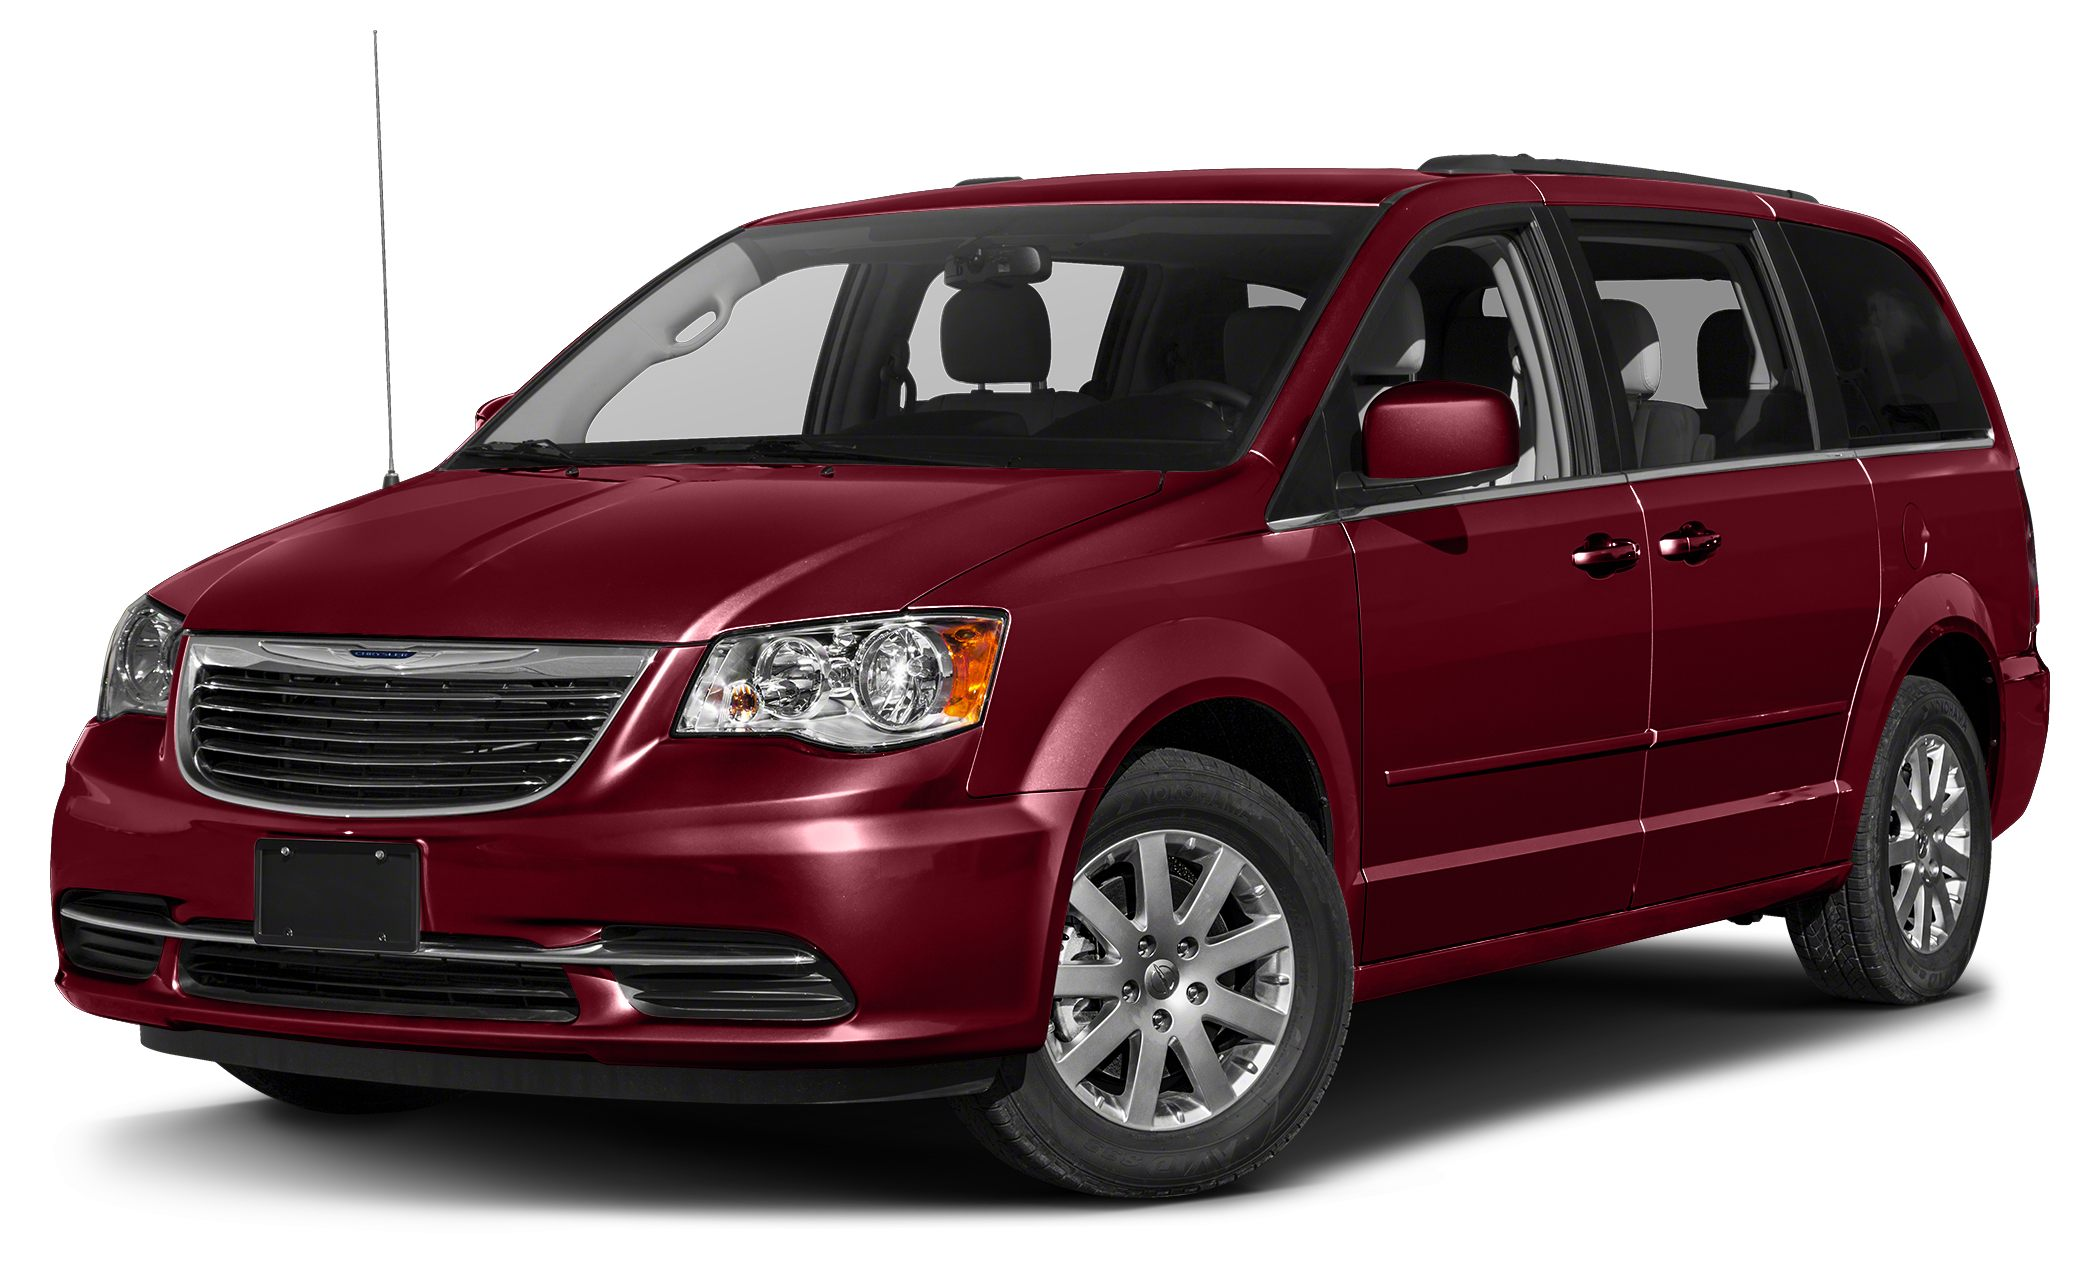 2015 Chrysler Town  Country Touring Excellent Condition Touring trim EPA 25 MPG Hwy17 MPG City